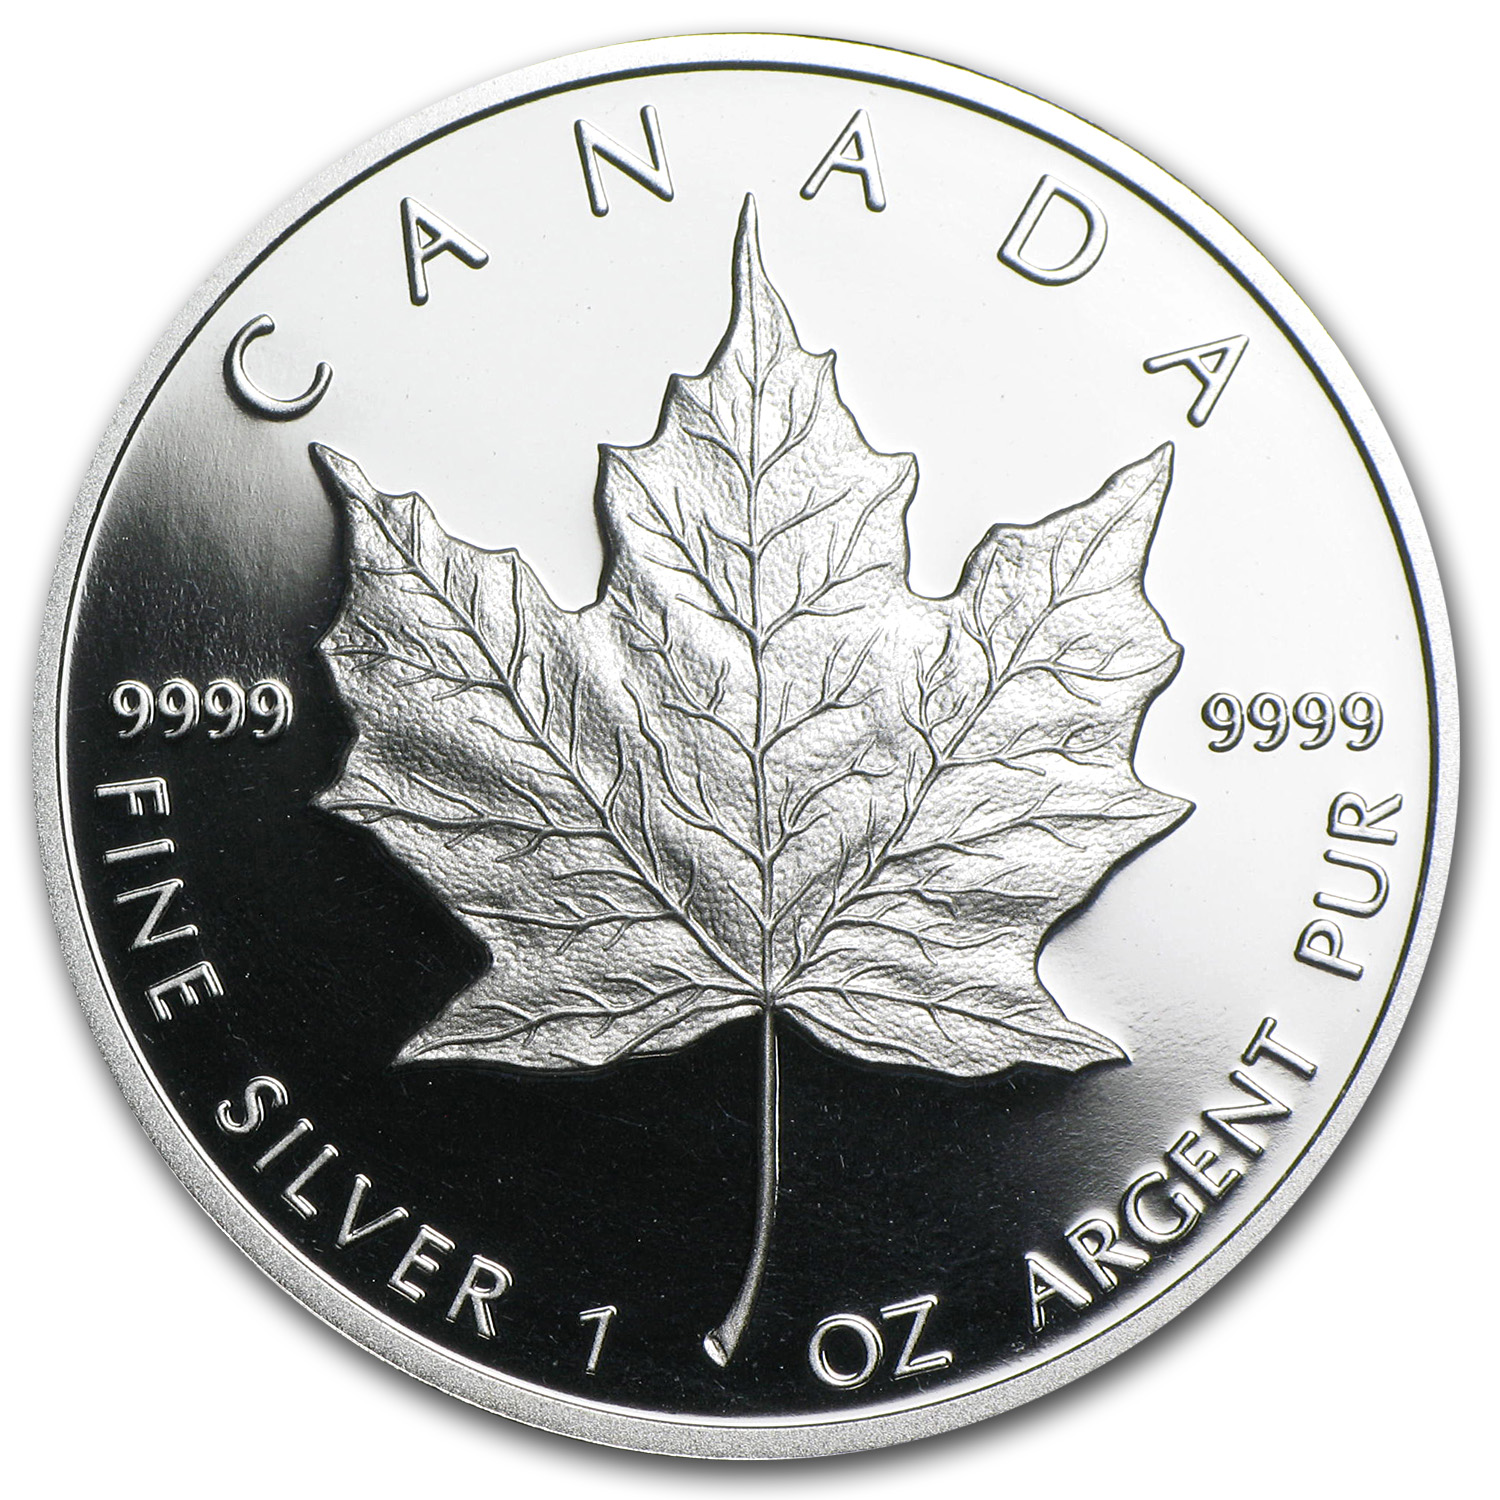 1989 Canada 1 oz Proof Silver Maple Leaf (w/Box & COA)